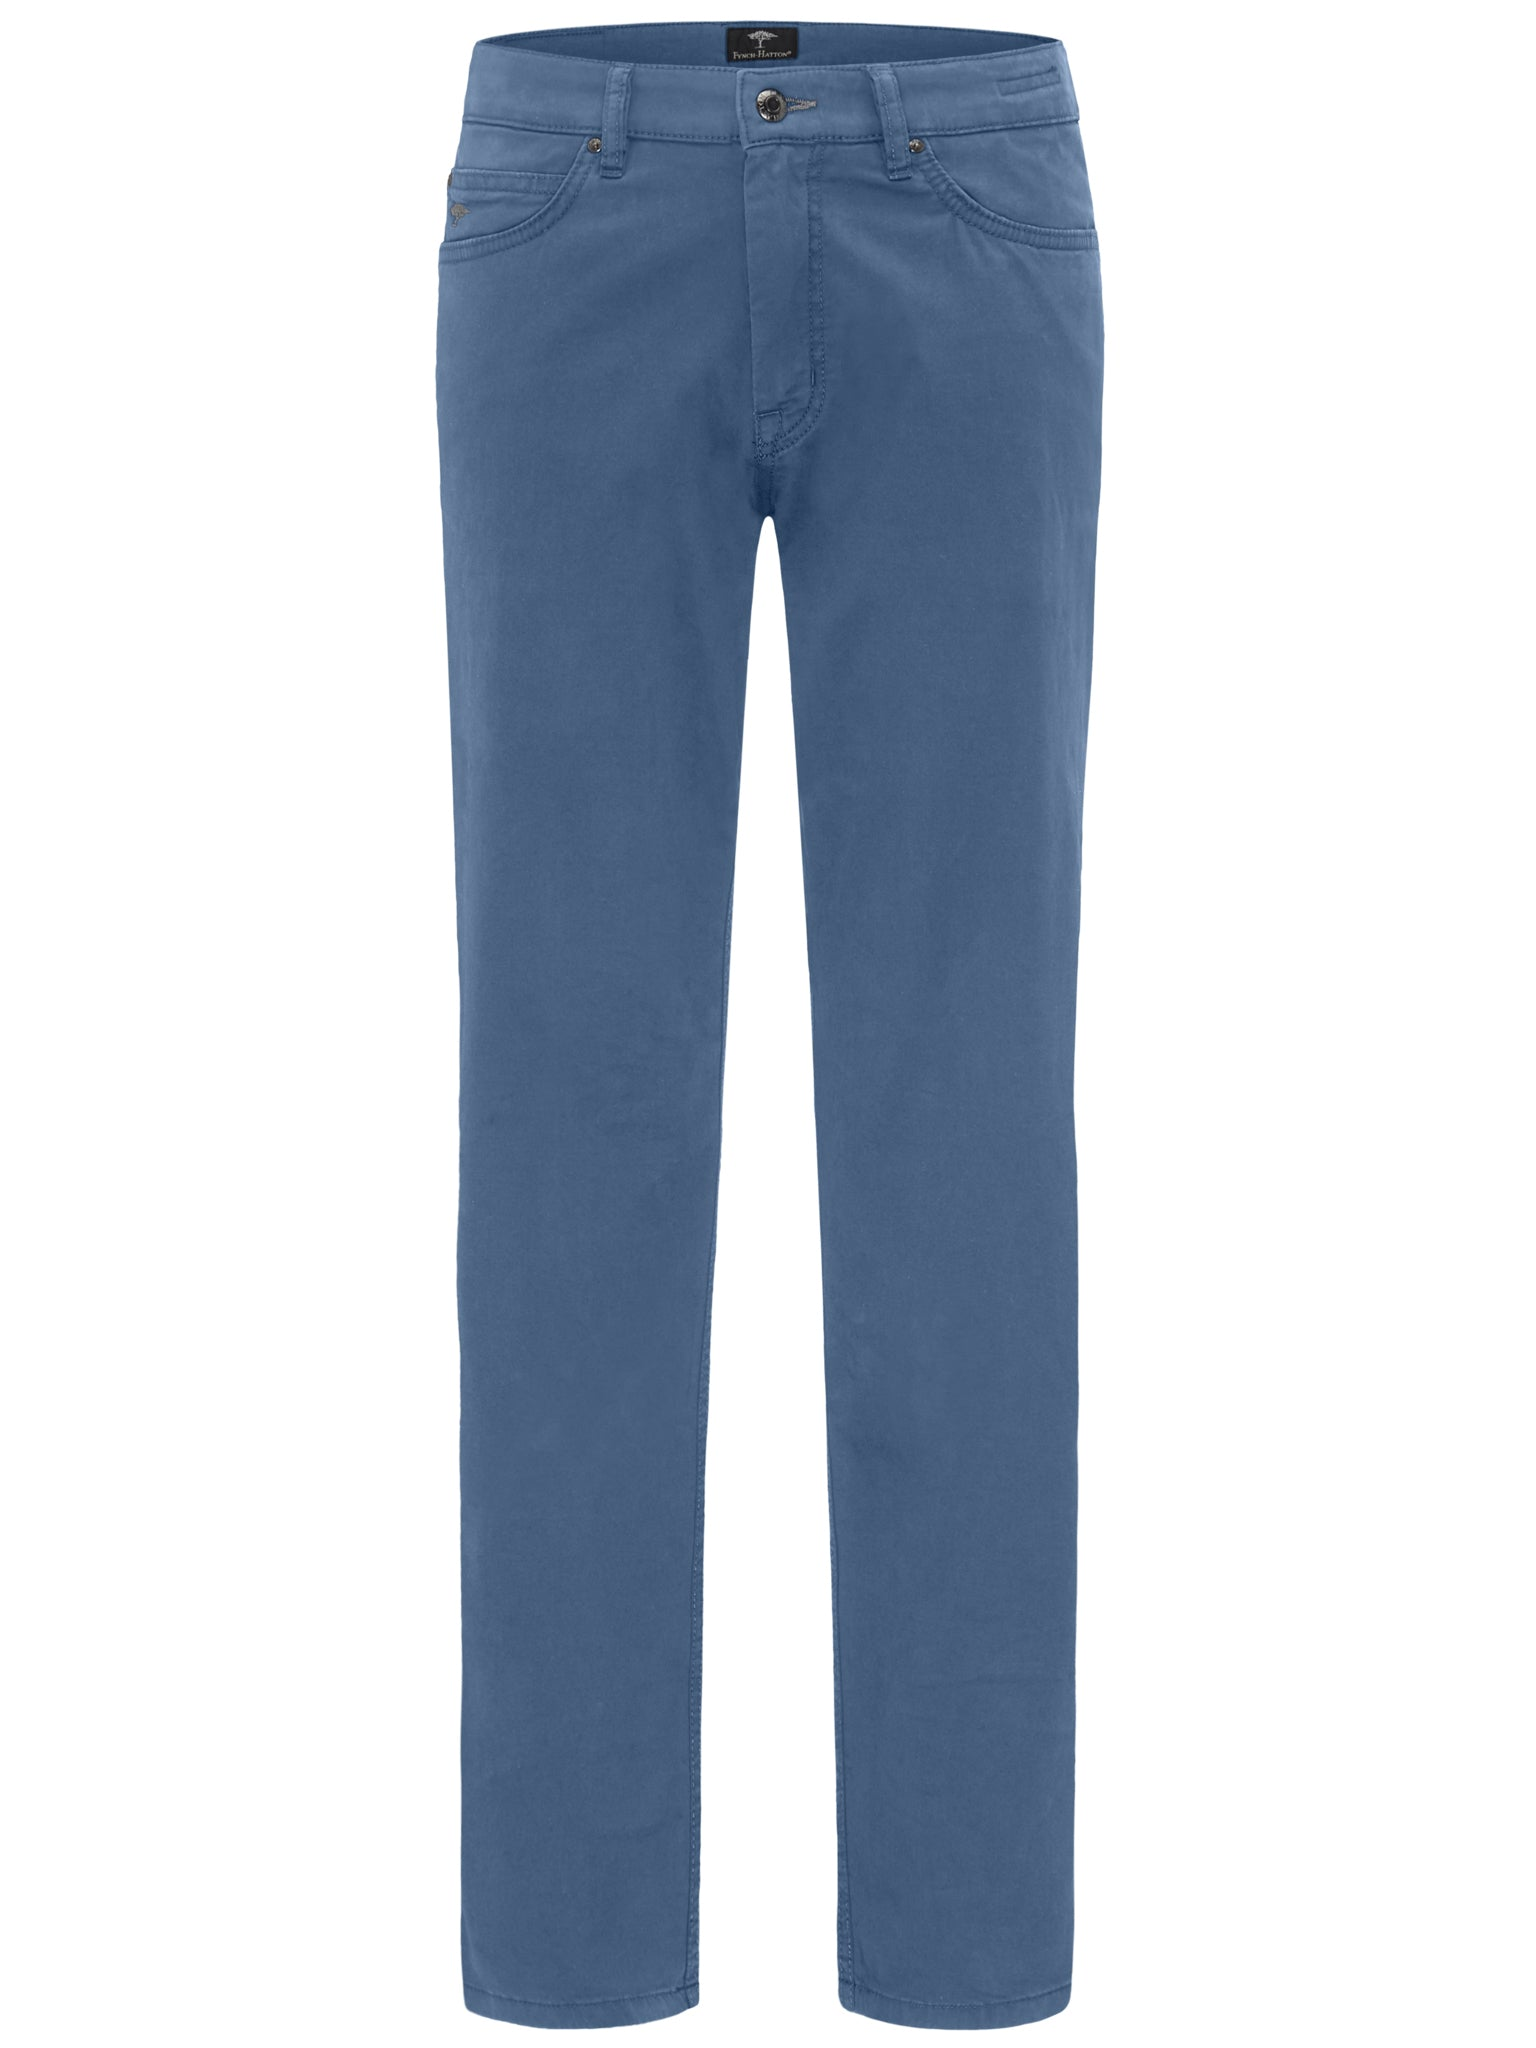 Fynch Hatton Tansania 5 Pocket Pima Trousers for Men in Pacific